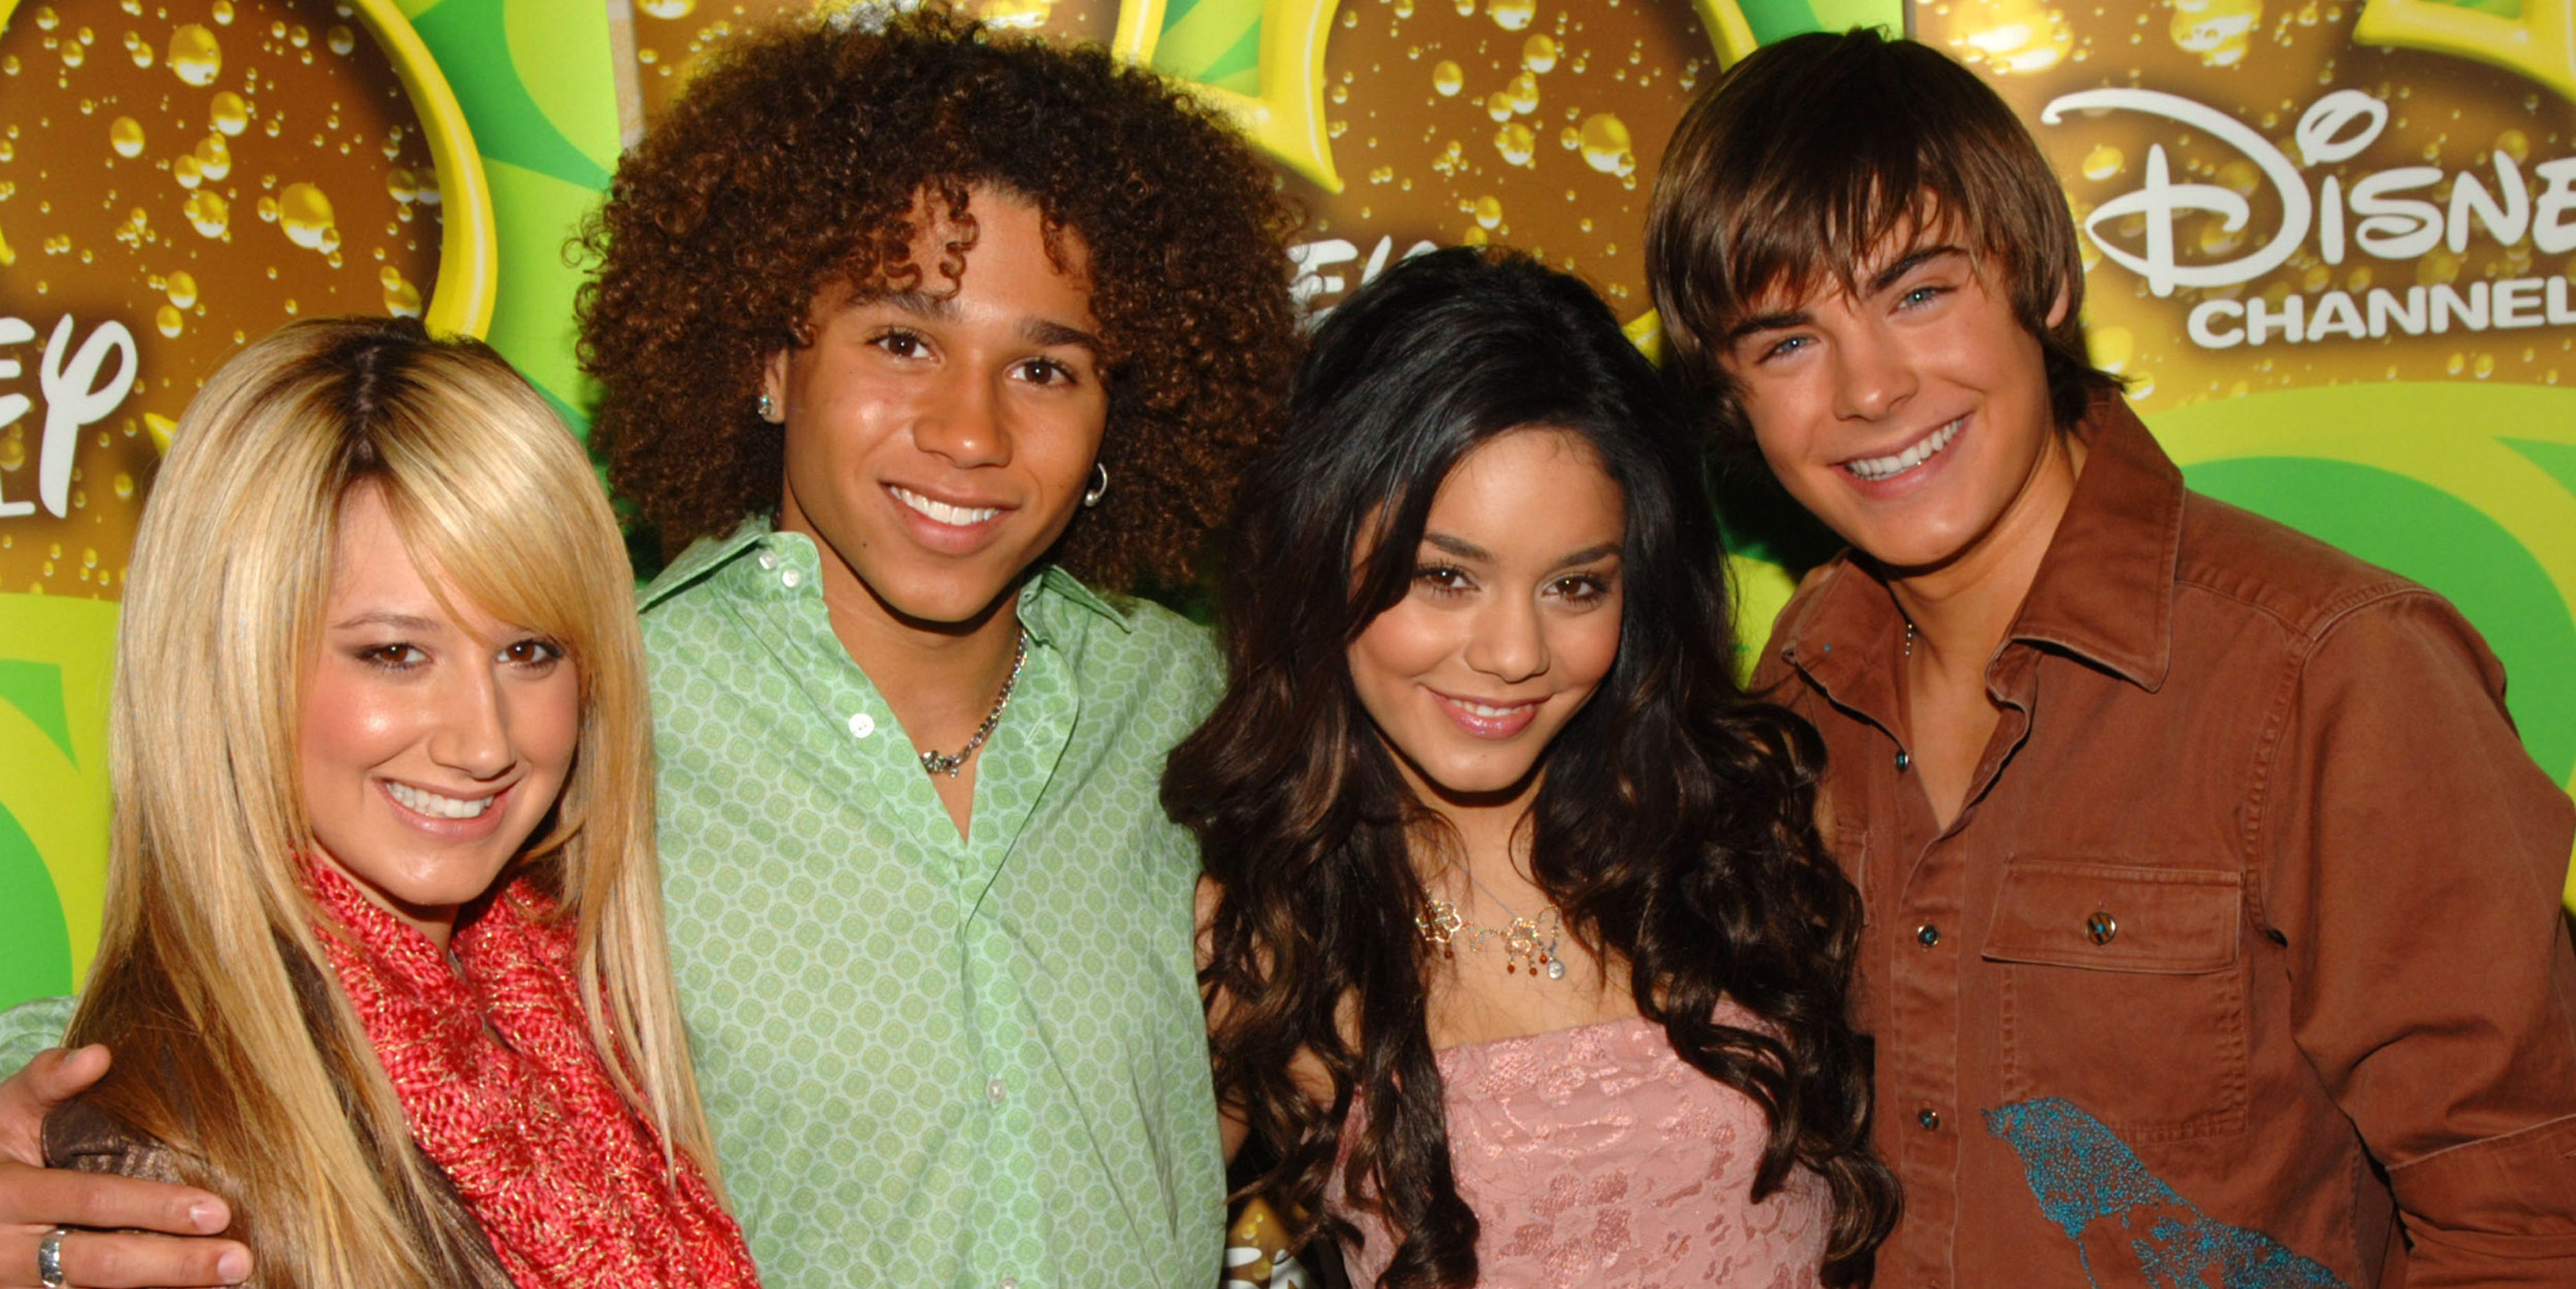 """The Whole """"High School Musical"""" Cast Including Zac Efron Will Be Reuniting For a Singalong Reunion"""